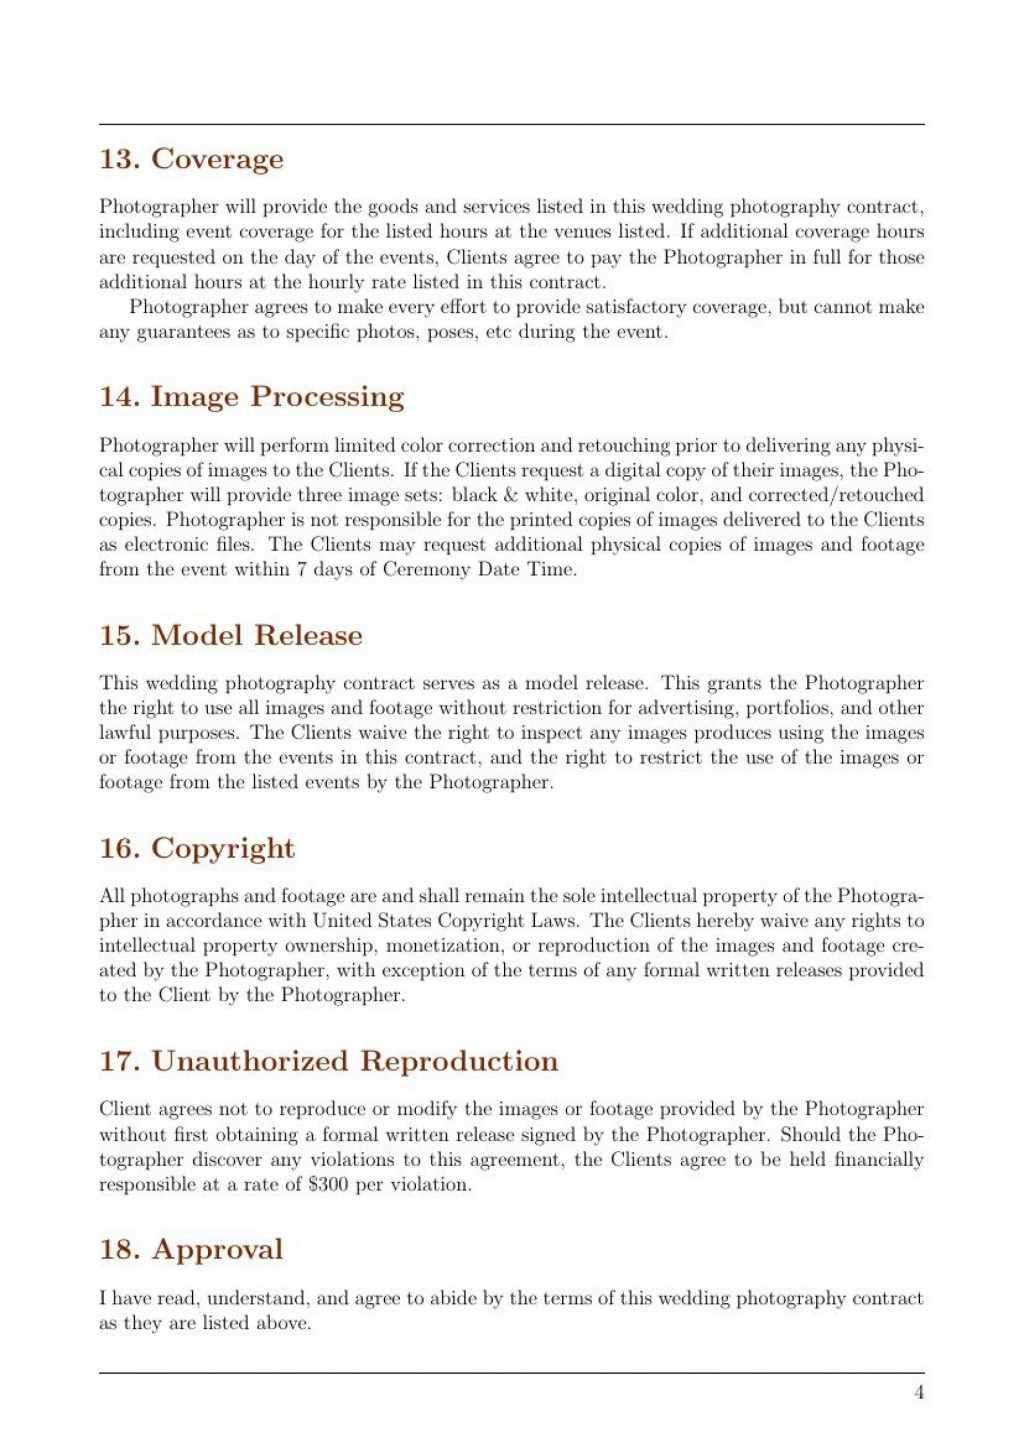 002 Magnificent Wedding Photographer Contract Template Concept  Free Photography UkLarge